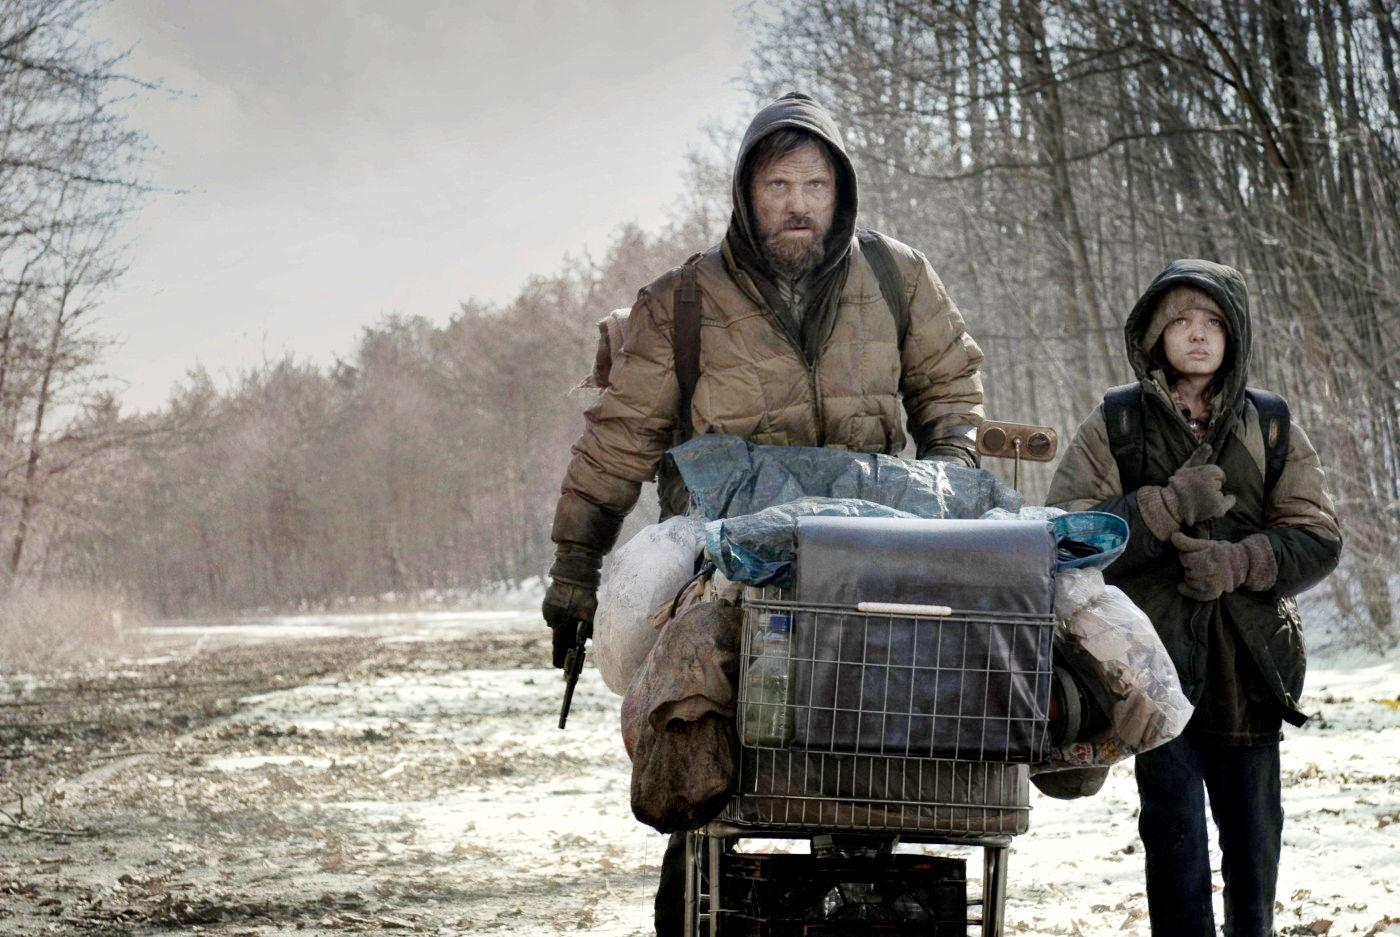 the tragedy of cormac mccarthys post apocalyptic novel the road